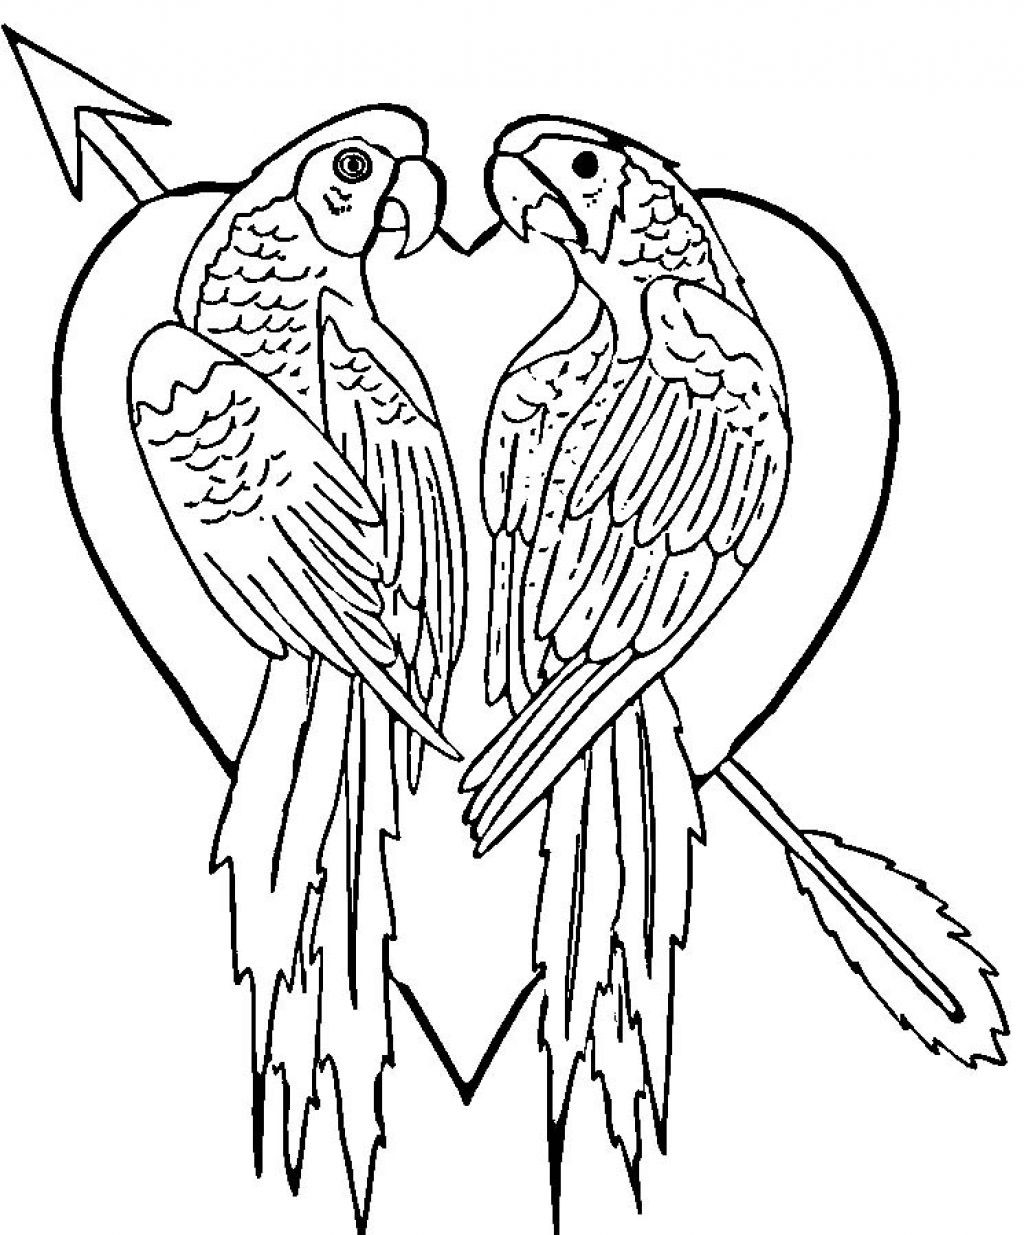 Best ideas about Free Coloring Sheets Printable . Save or Pin Free Printable Parrot Coloring Pages For Kids Now.